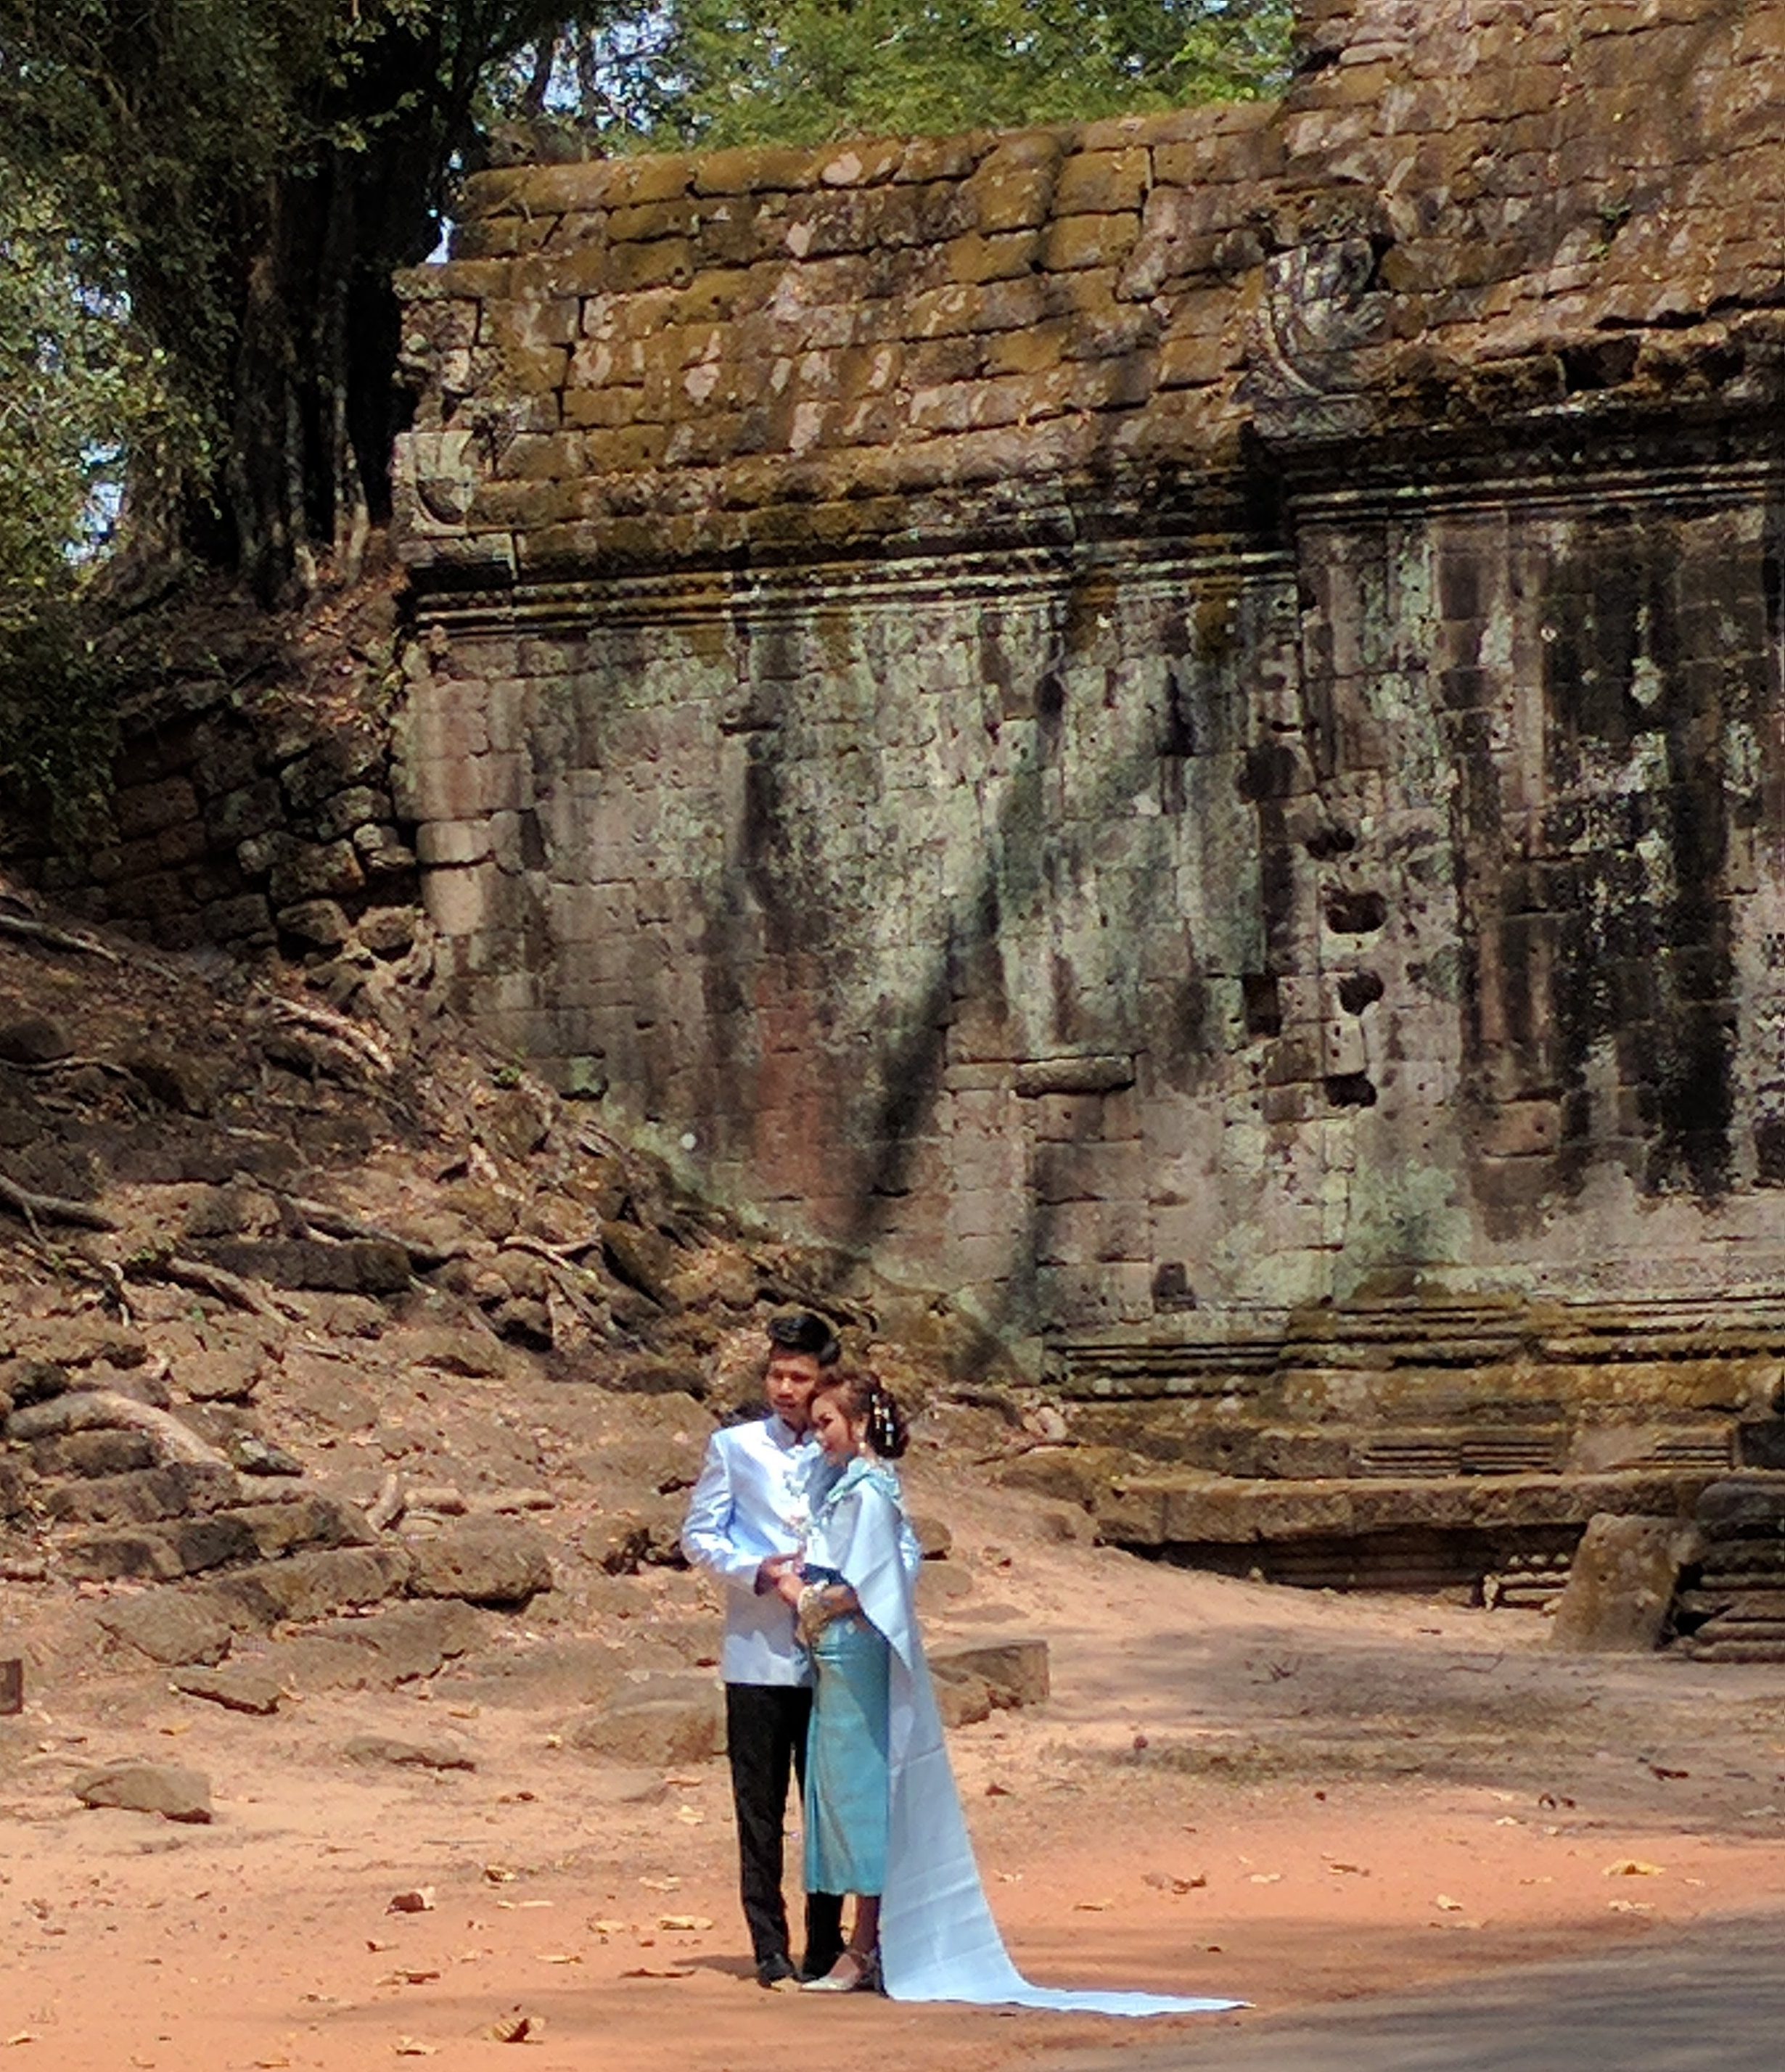 Any of the temples seemed to be a very popular place for wedding photos!